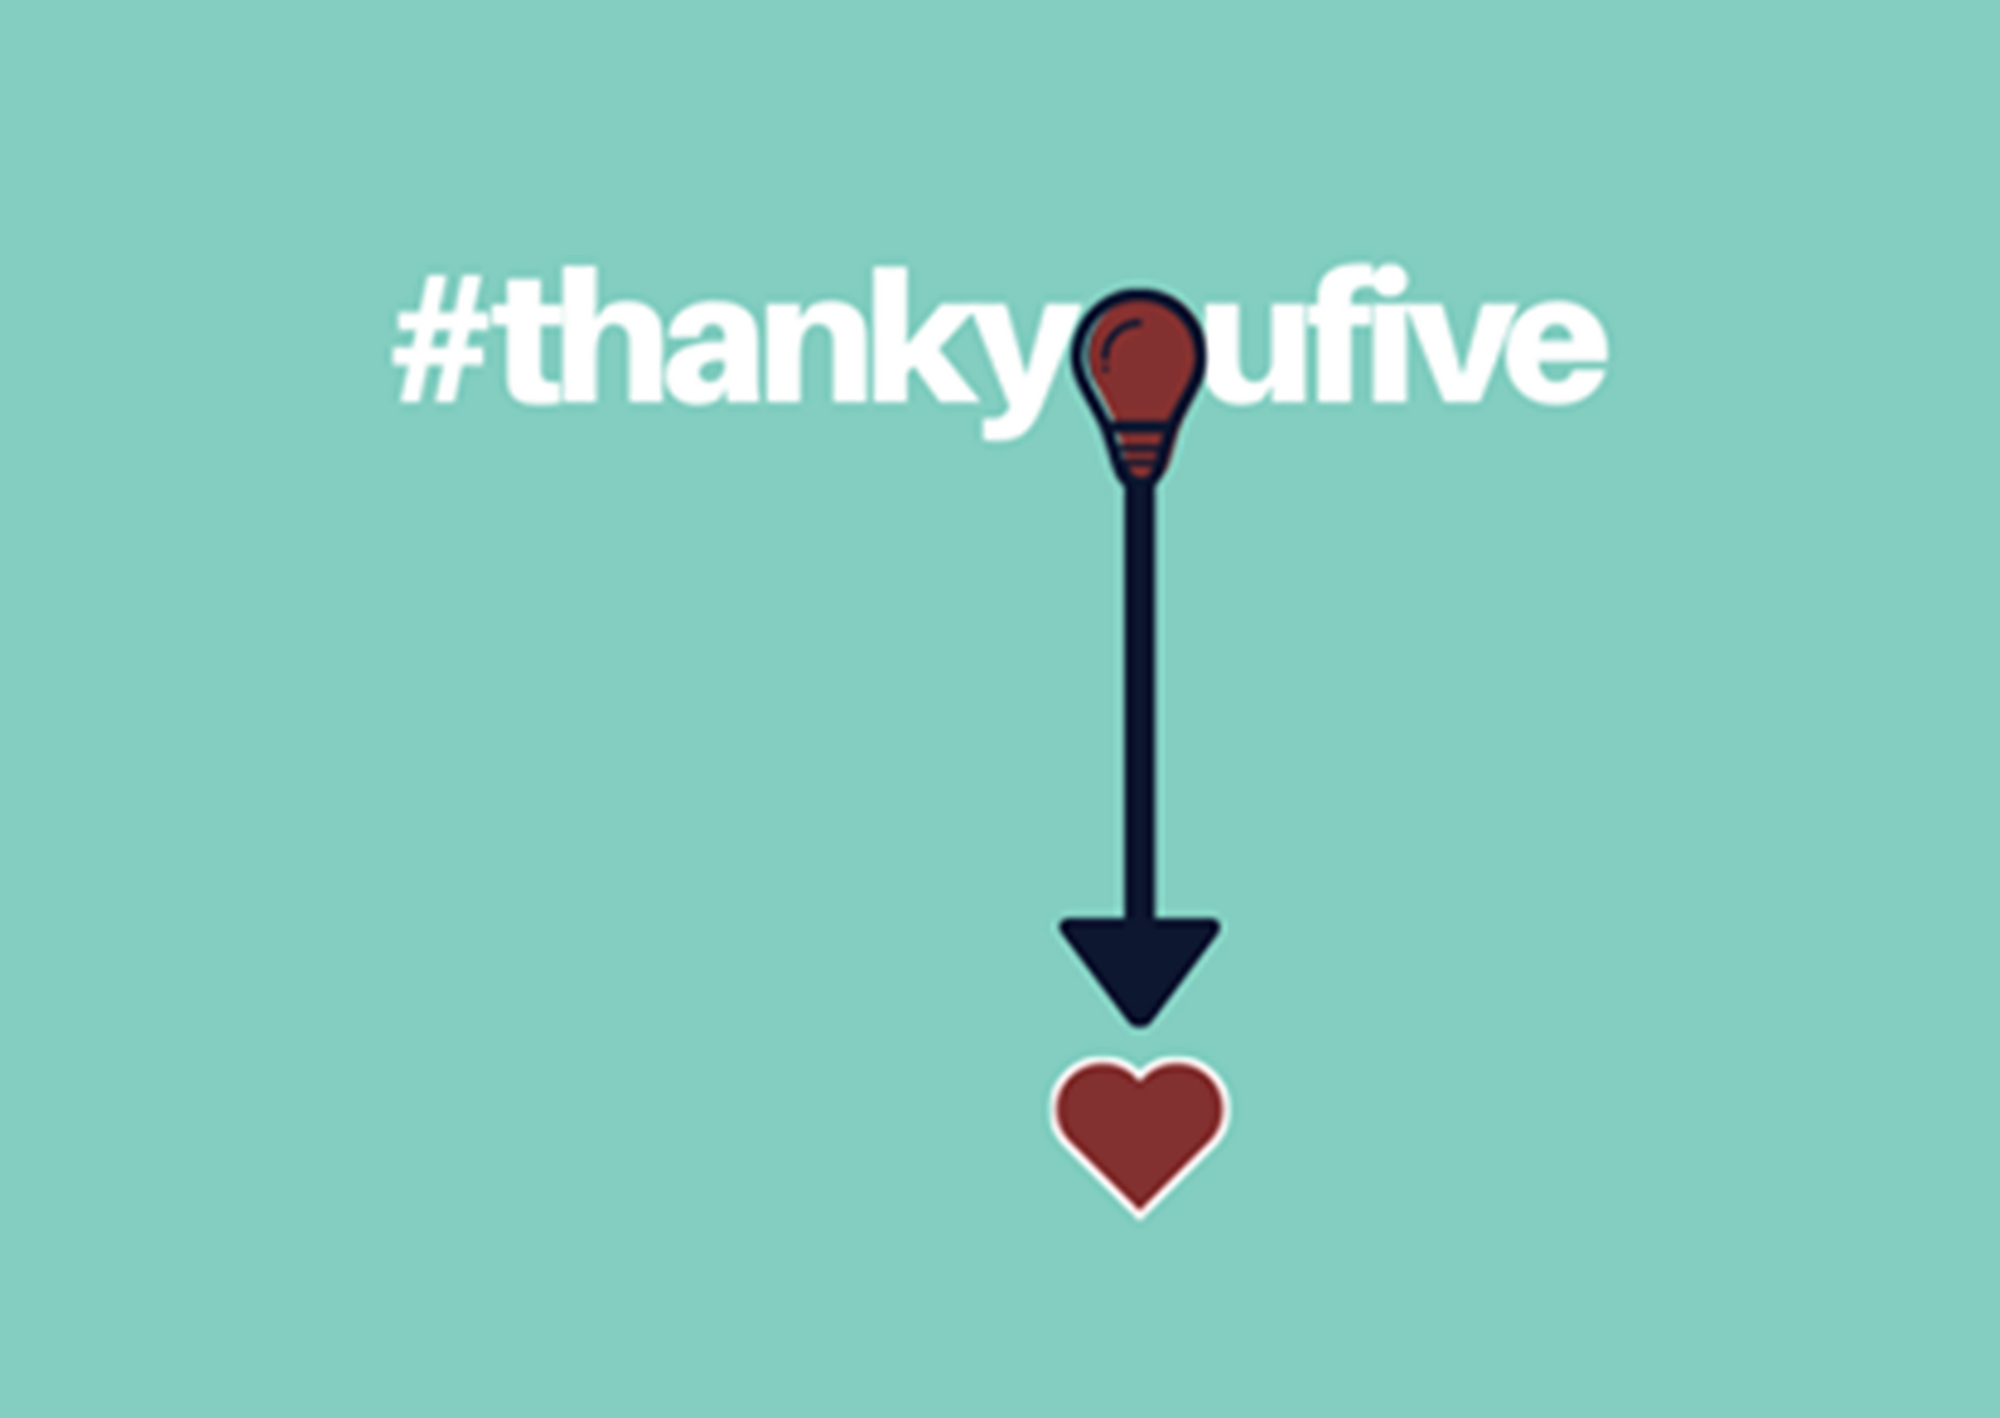 The Cre8sian Project Spotlight: #thankyoufive